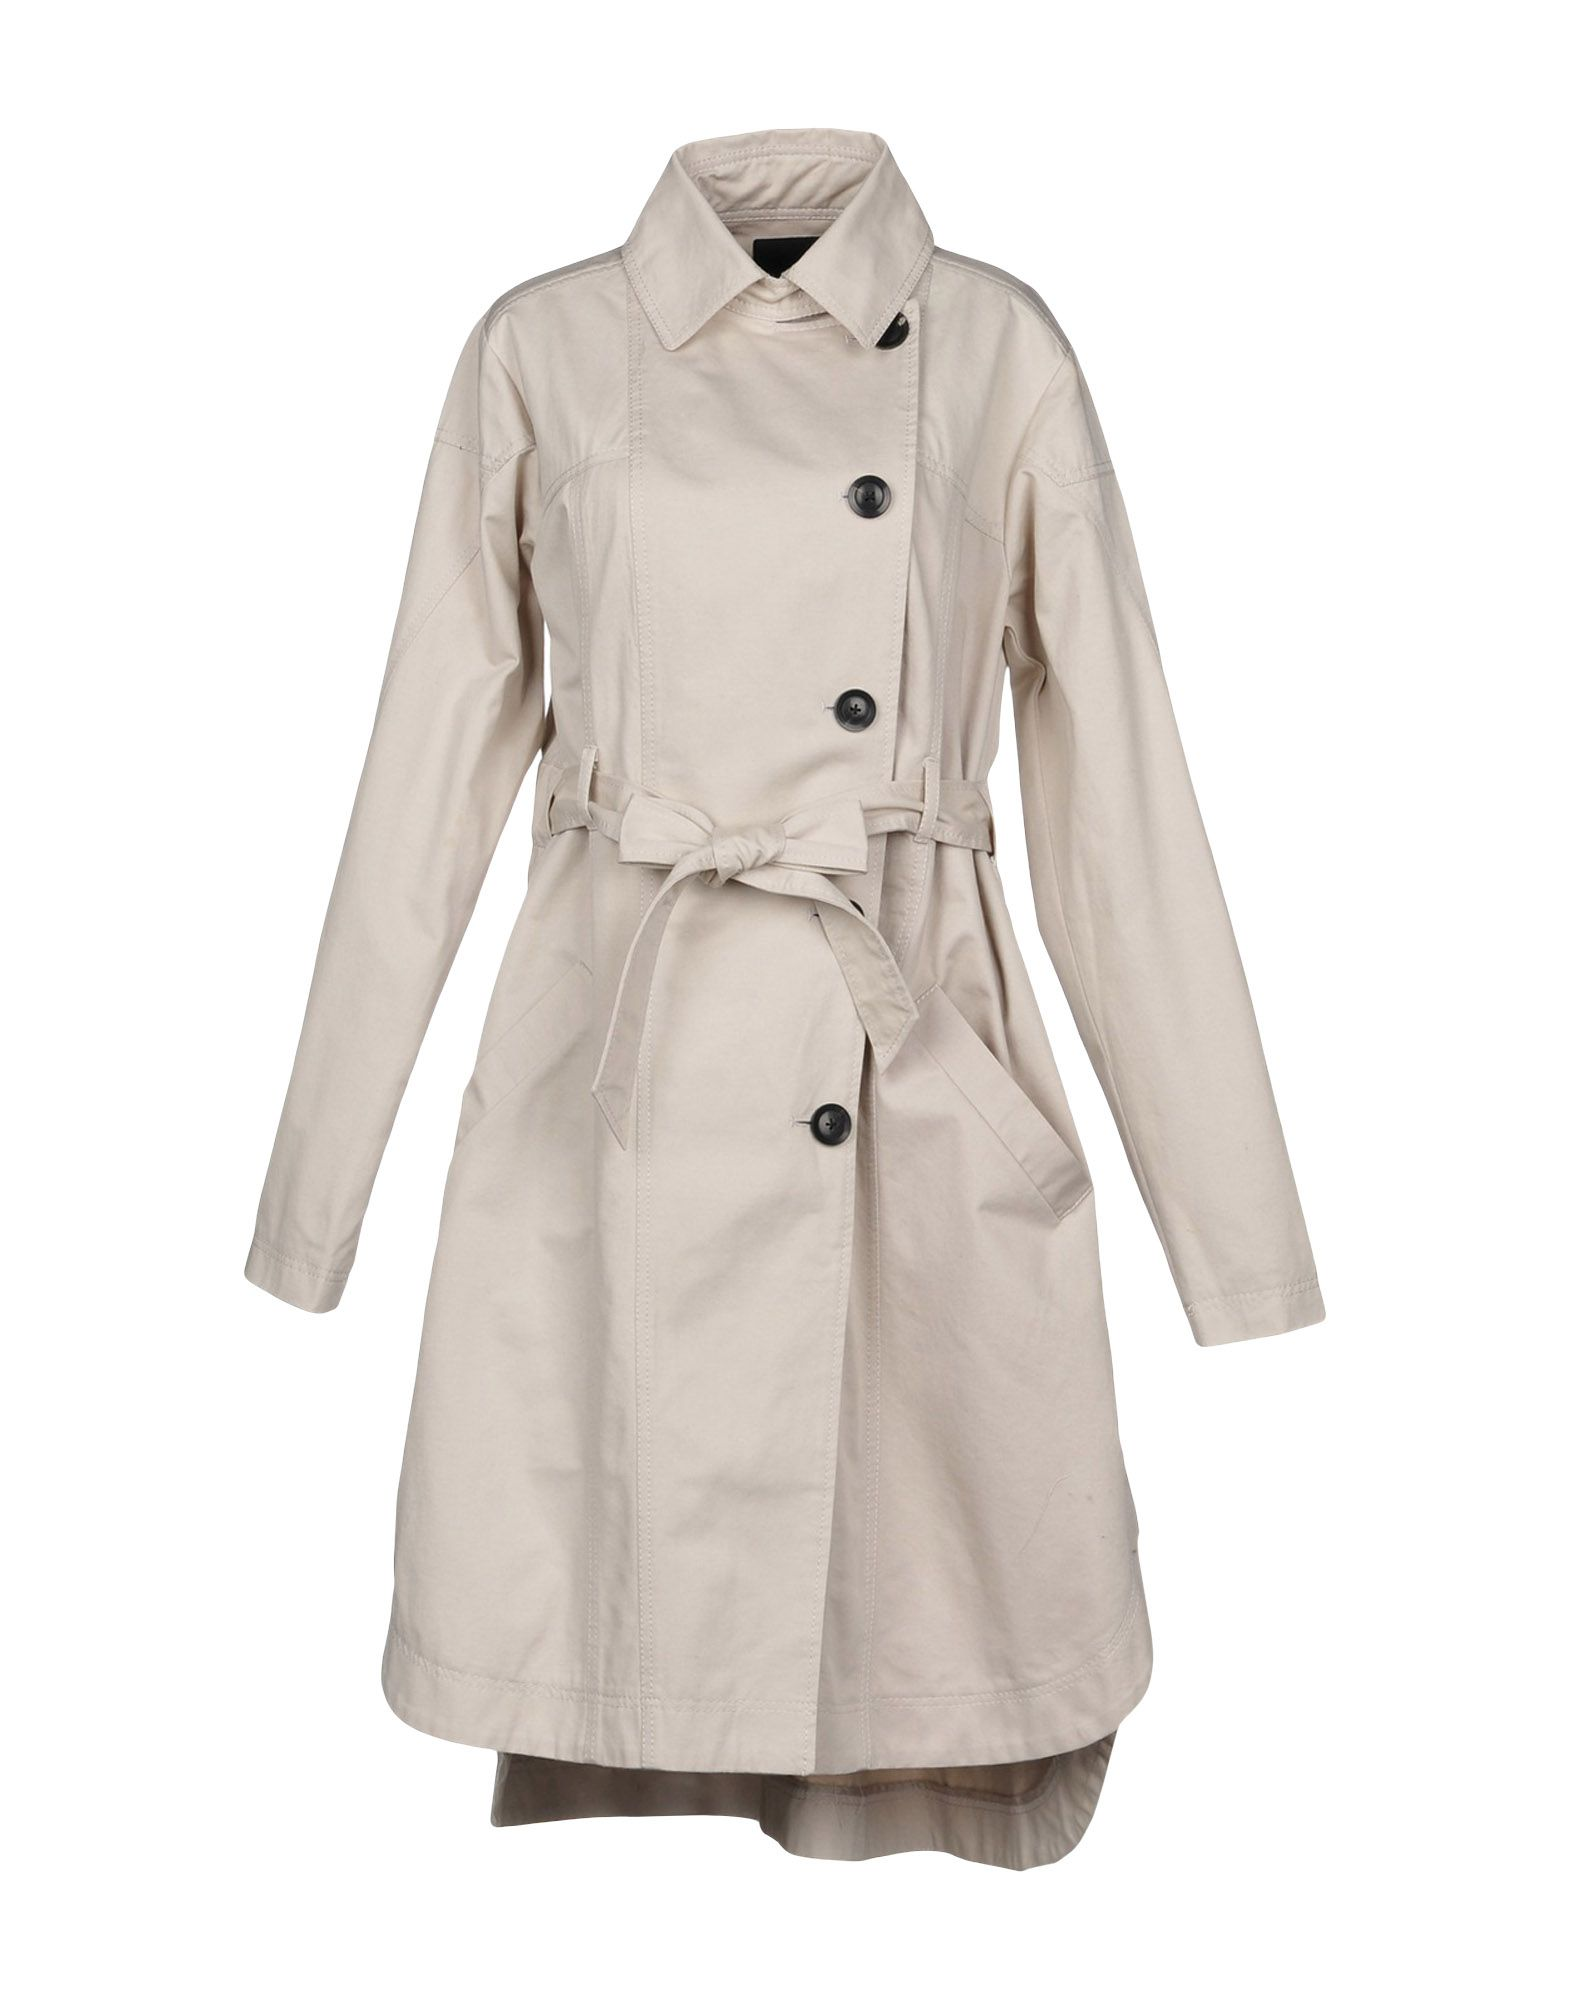 MARISSA WEBB Overcoats in Beige